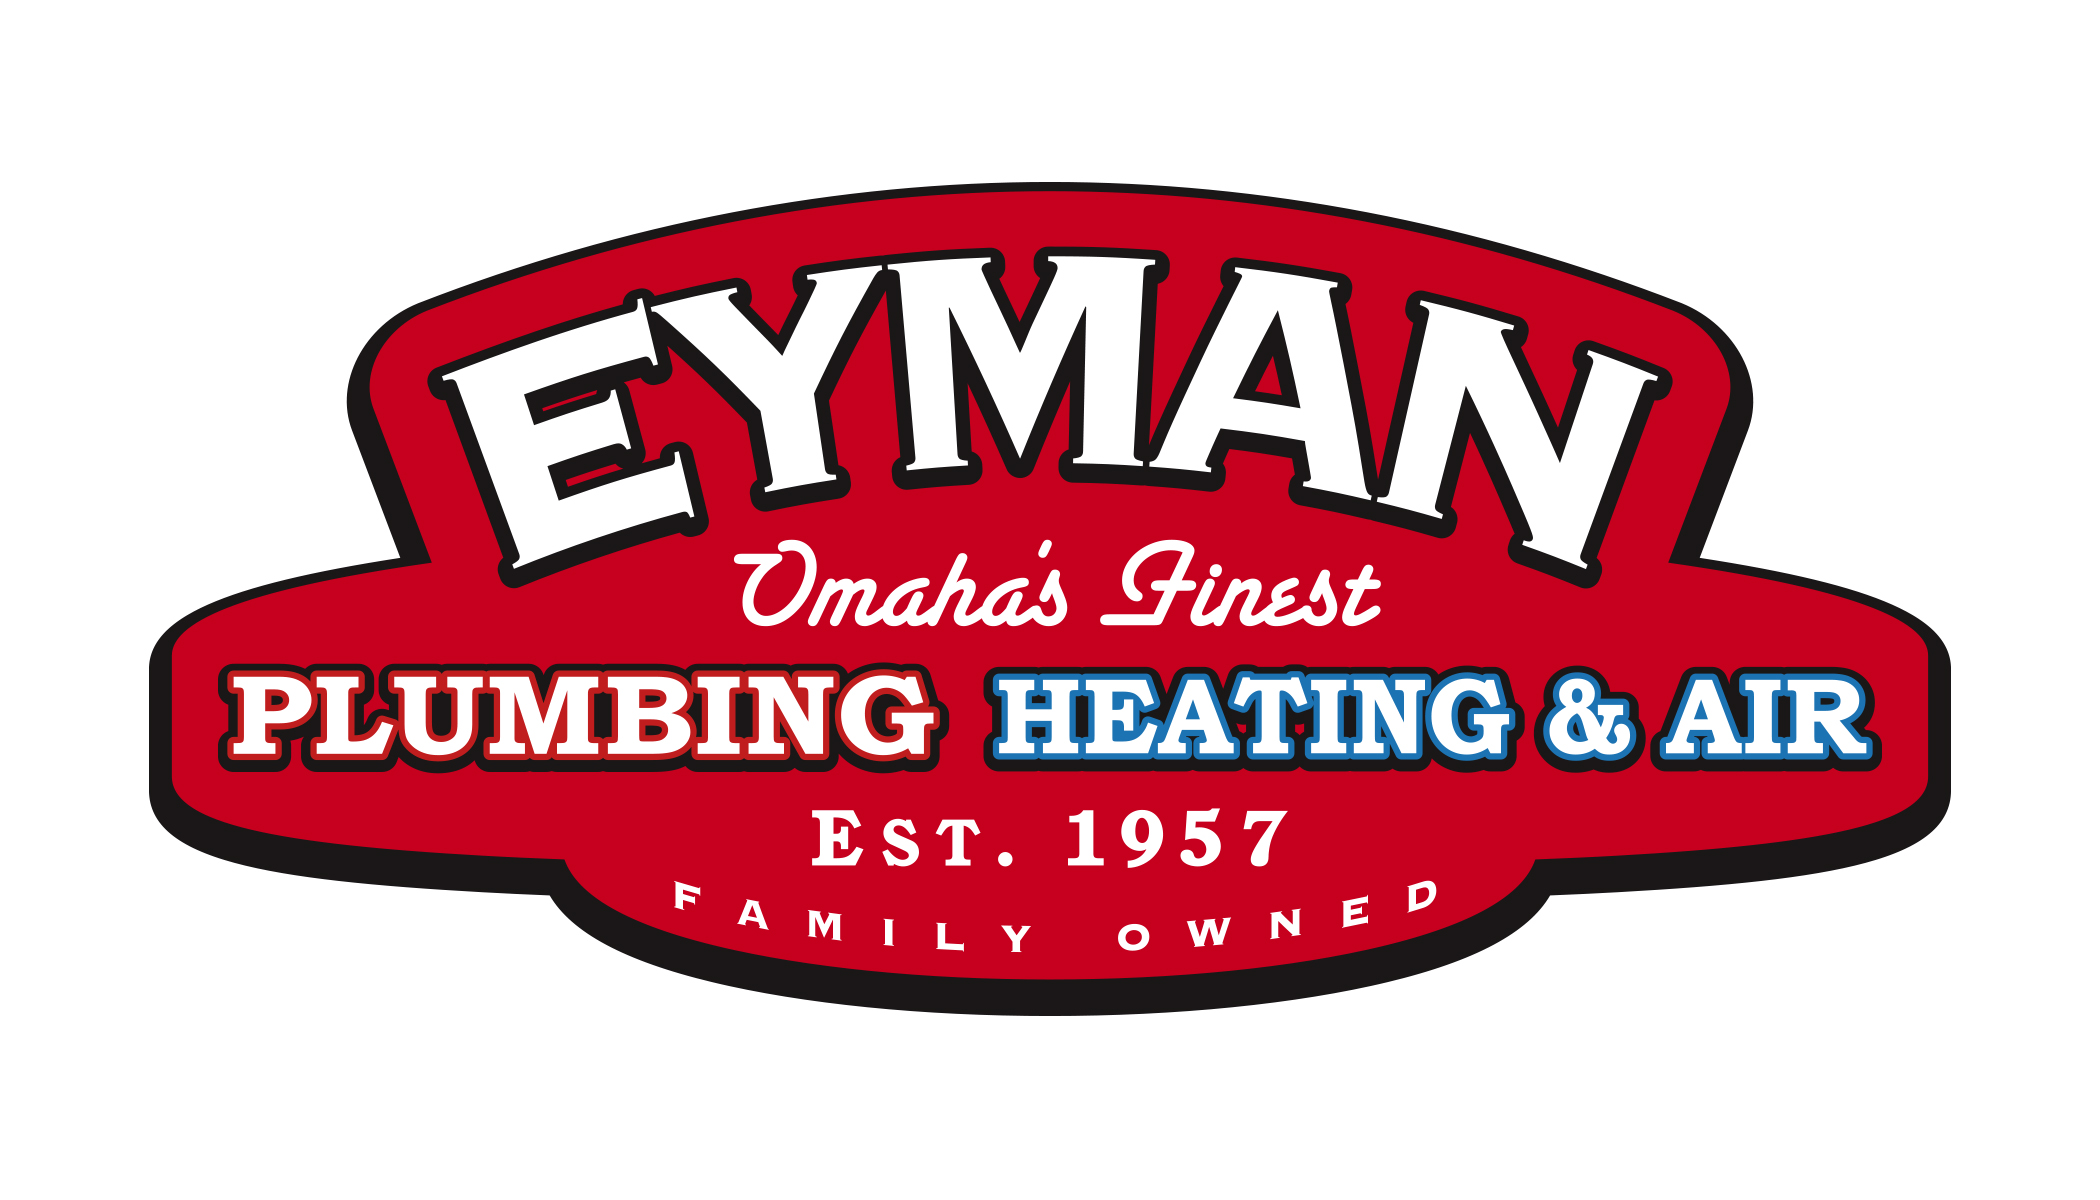 Eyman Plumbing, Heating and Air Online Payment